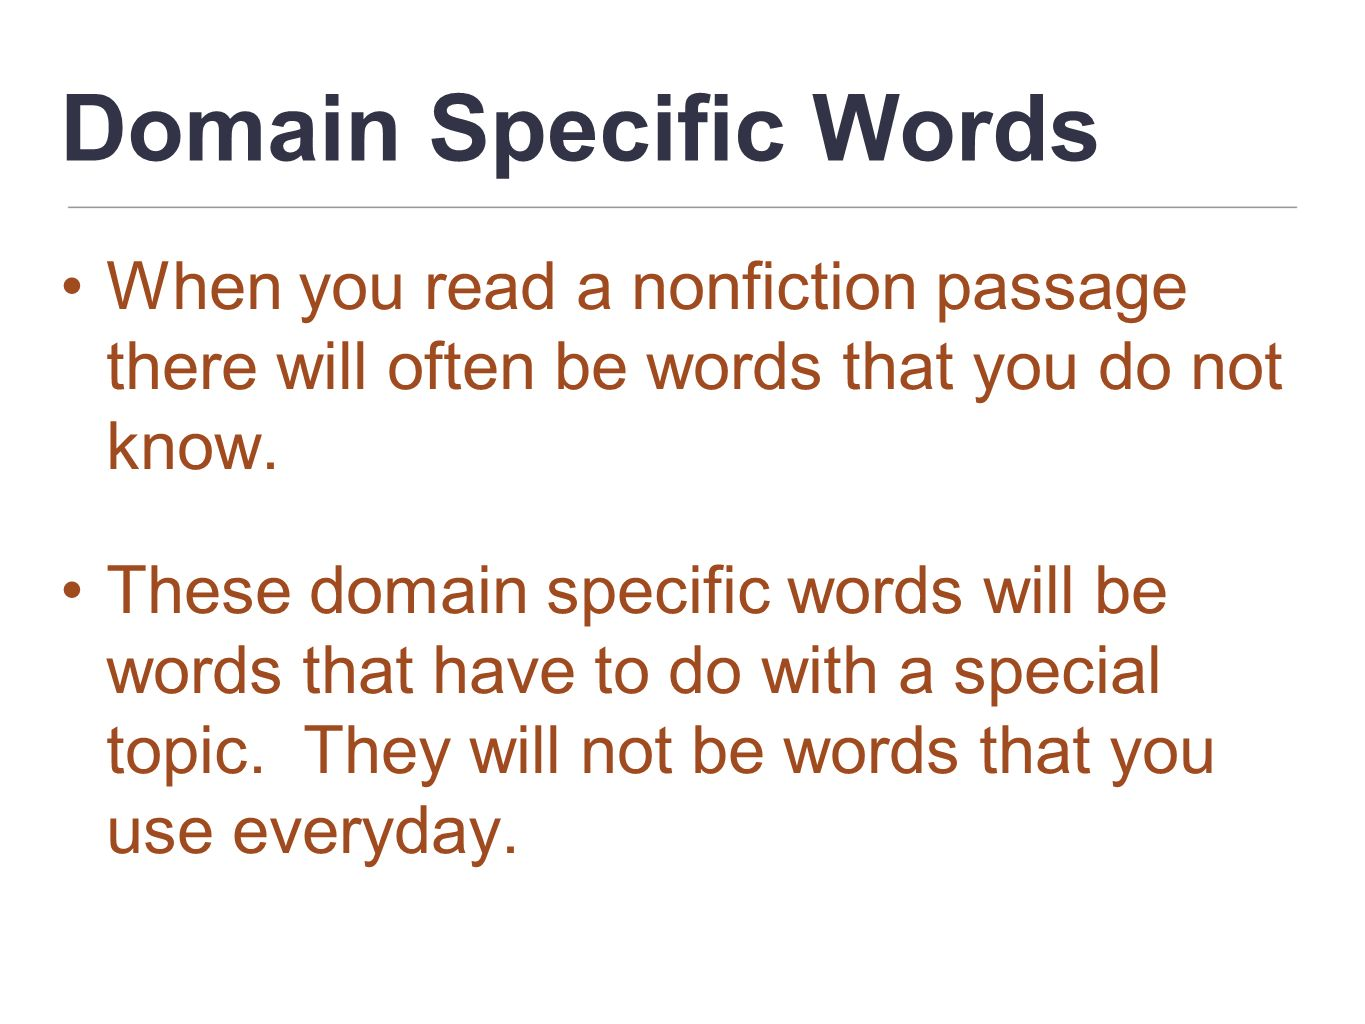 Domain Specific Words When you read a nonfiction passage there will often be words that you do not know.